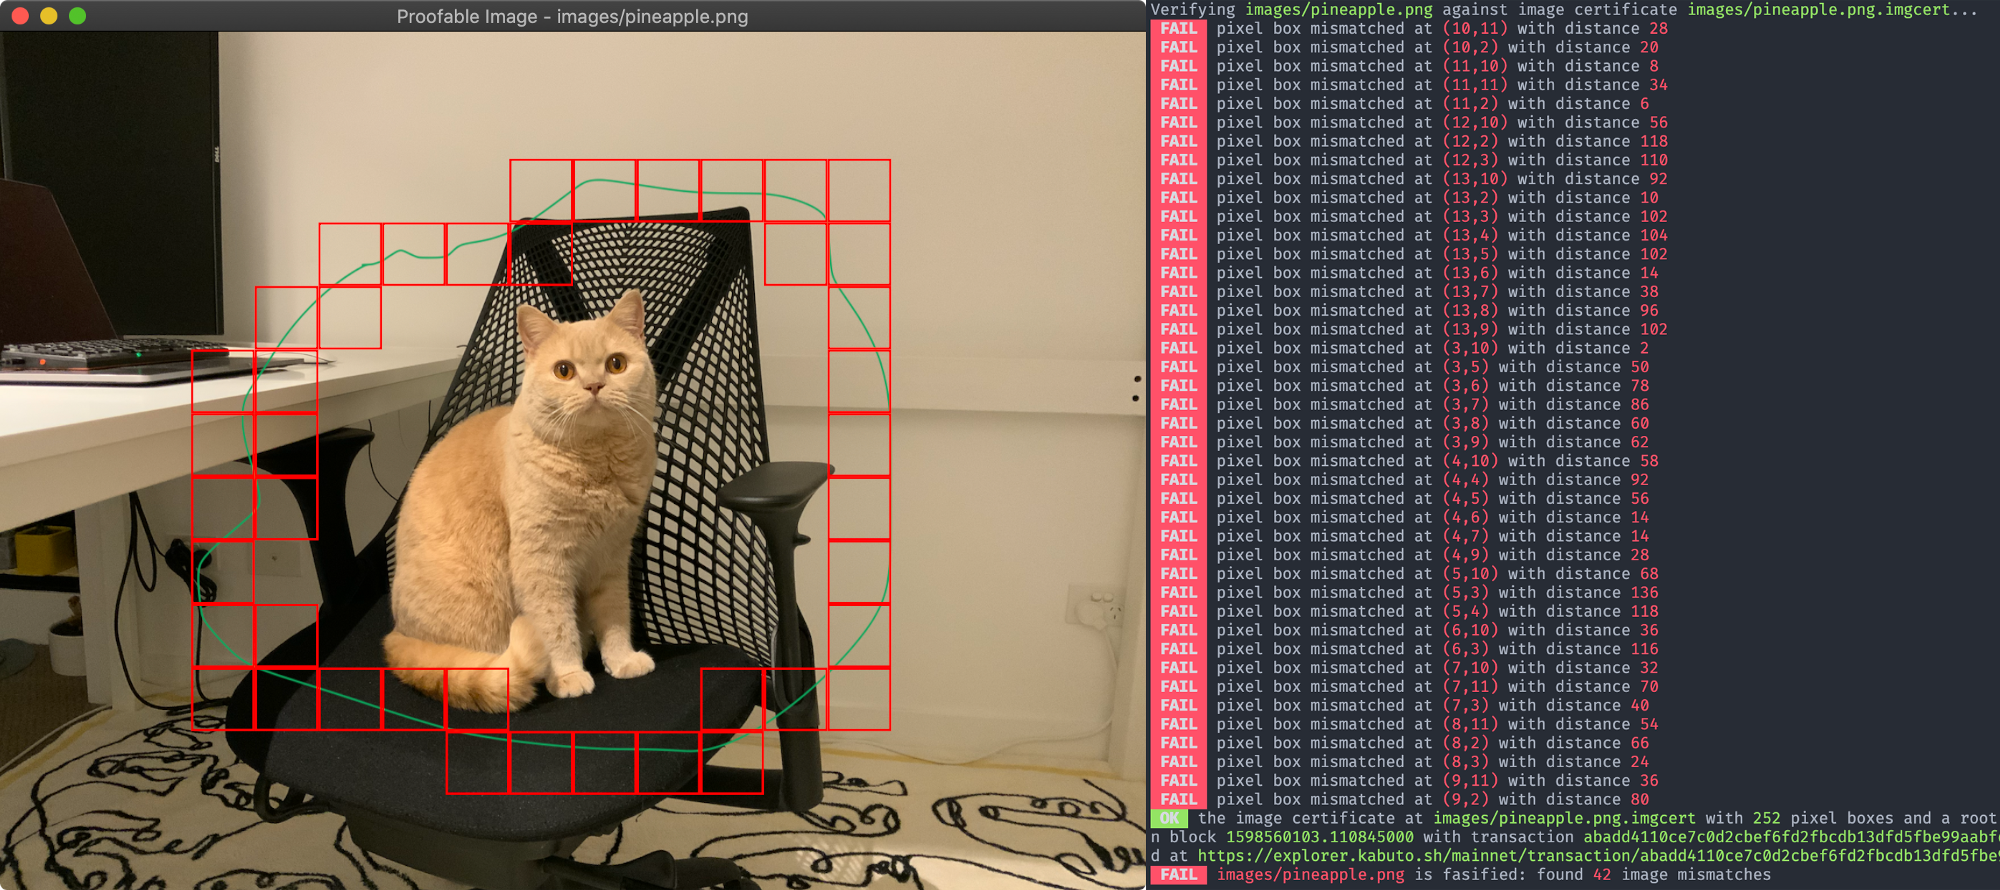 Proofable Image Tampering Detection for the Image of My Cat Pineapple